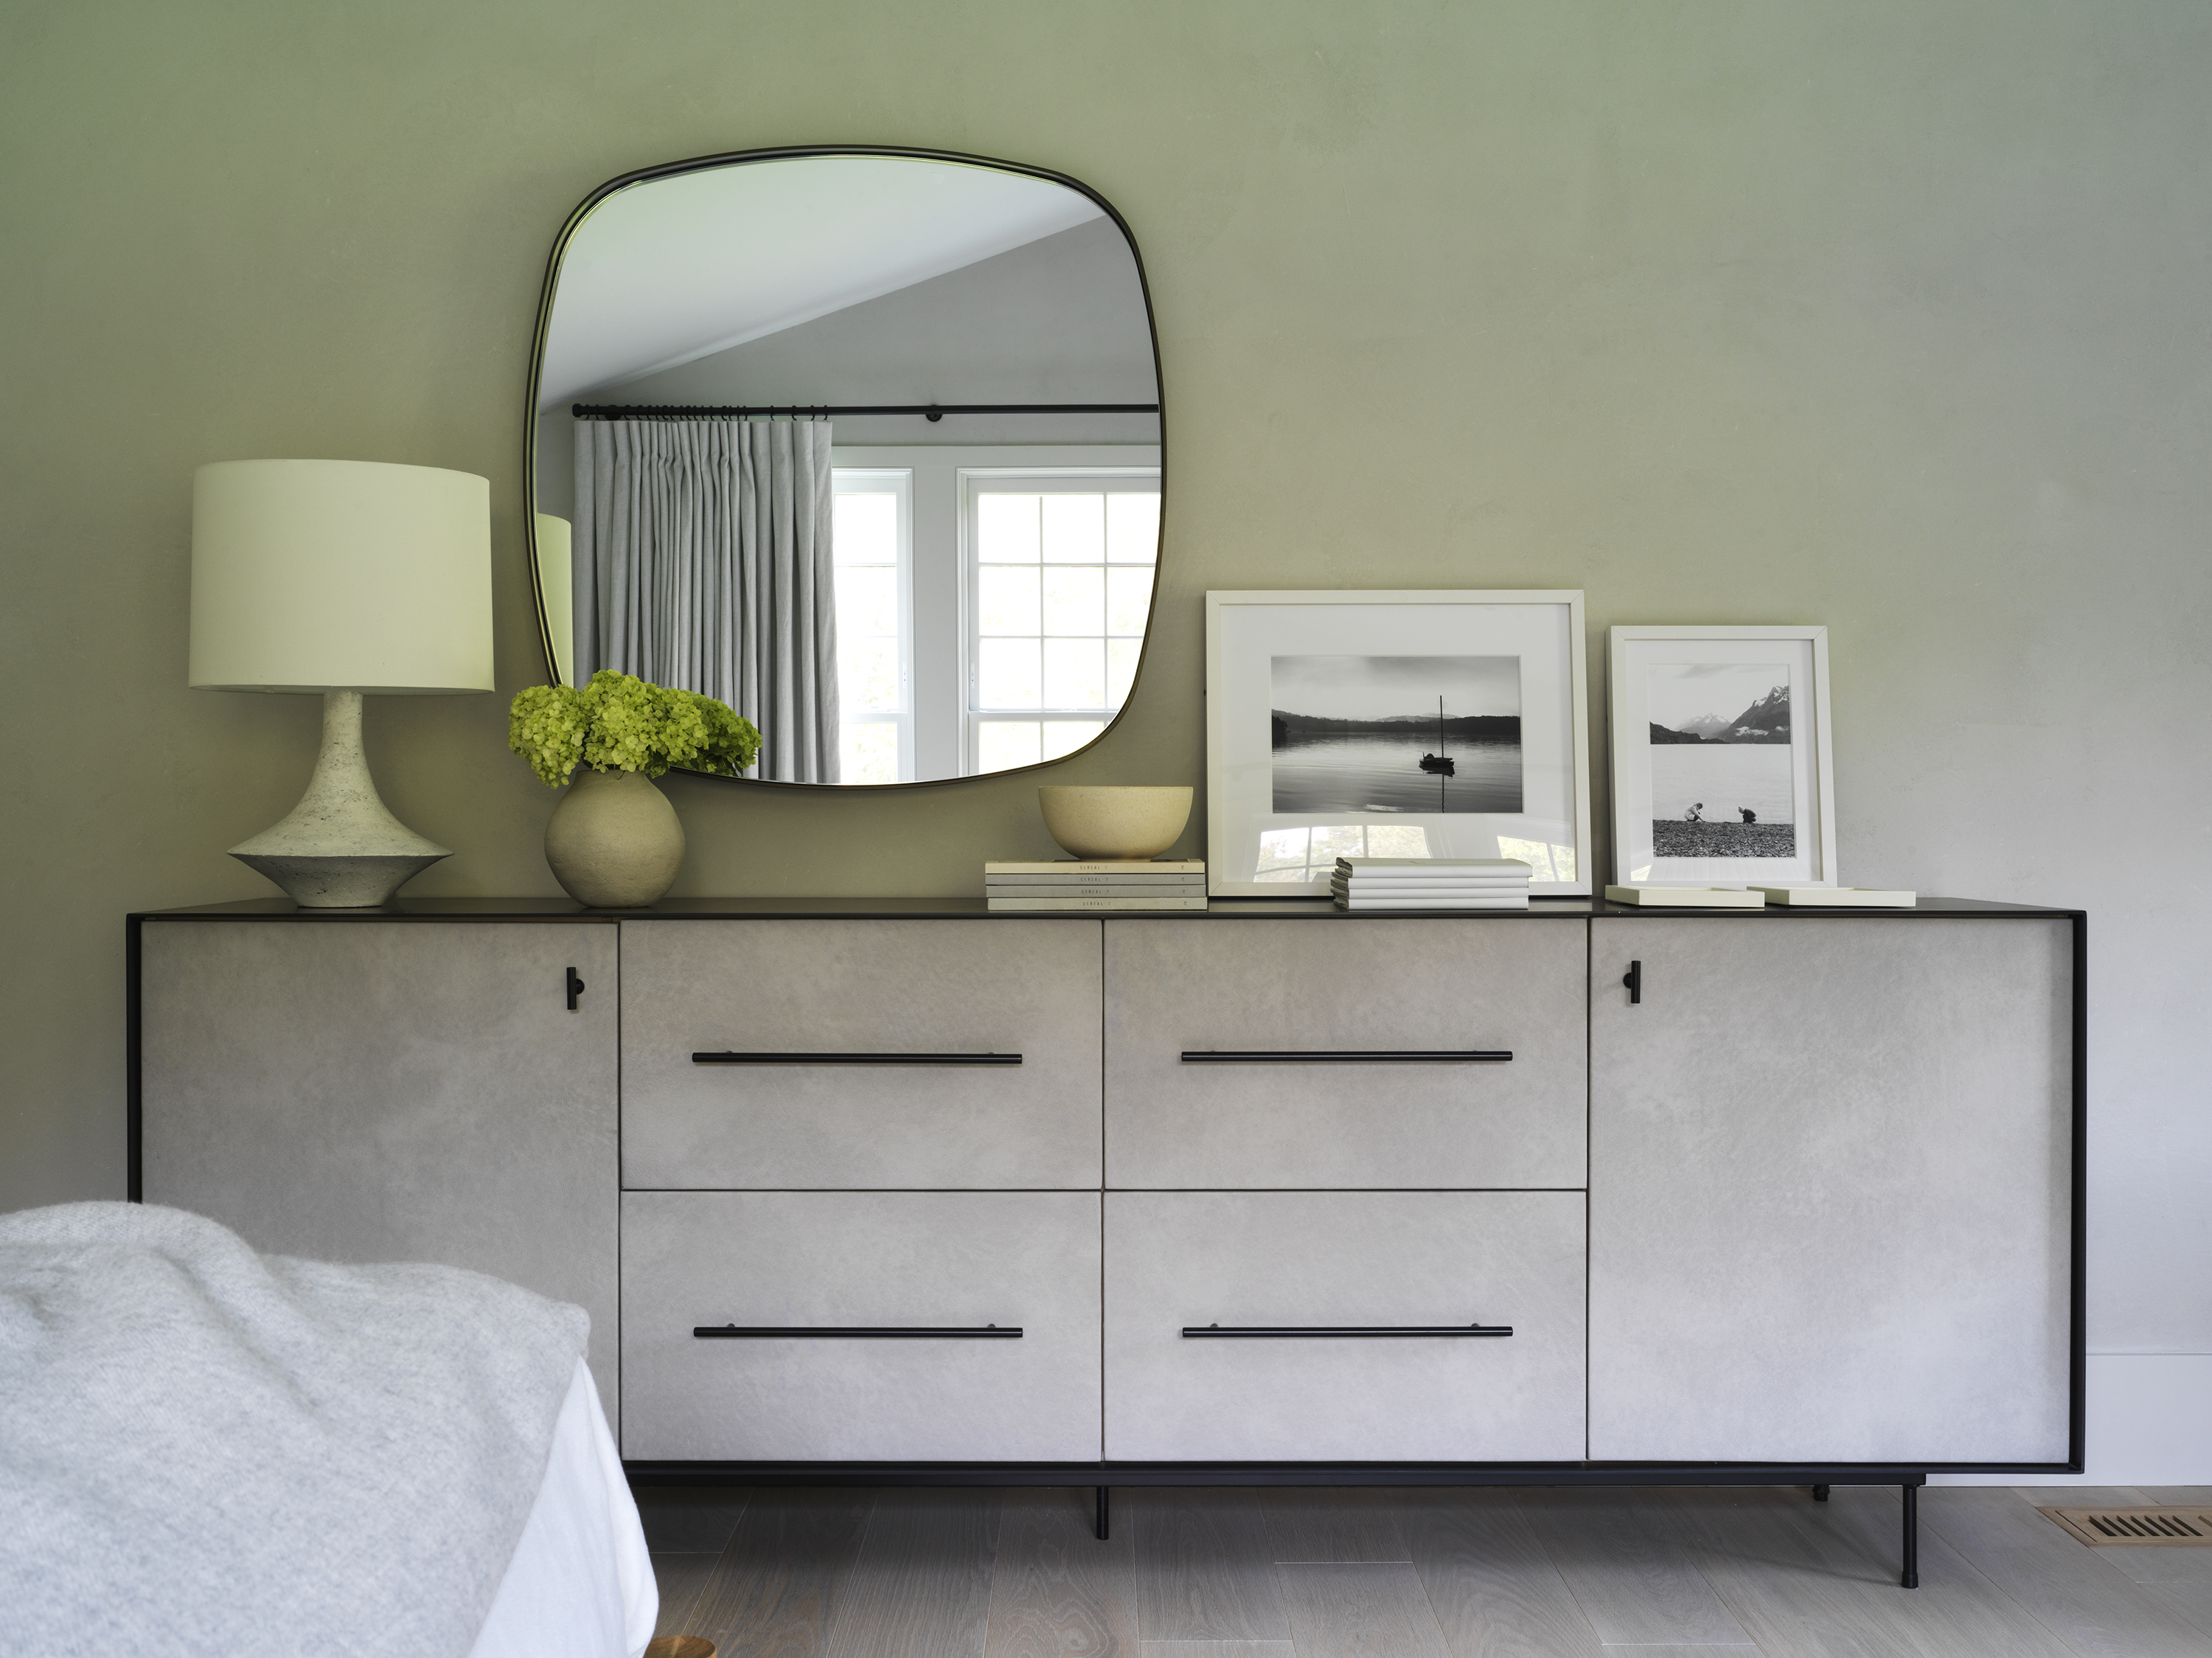 A beige dresser with a rounded square mirror hanging above.